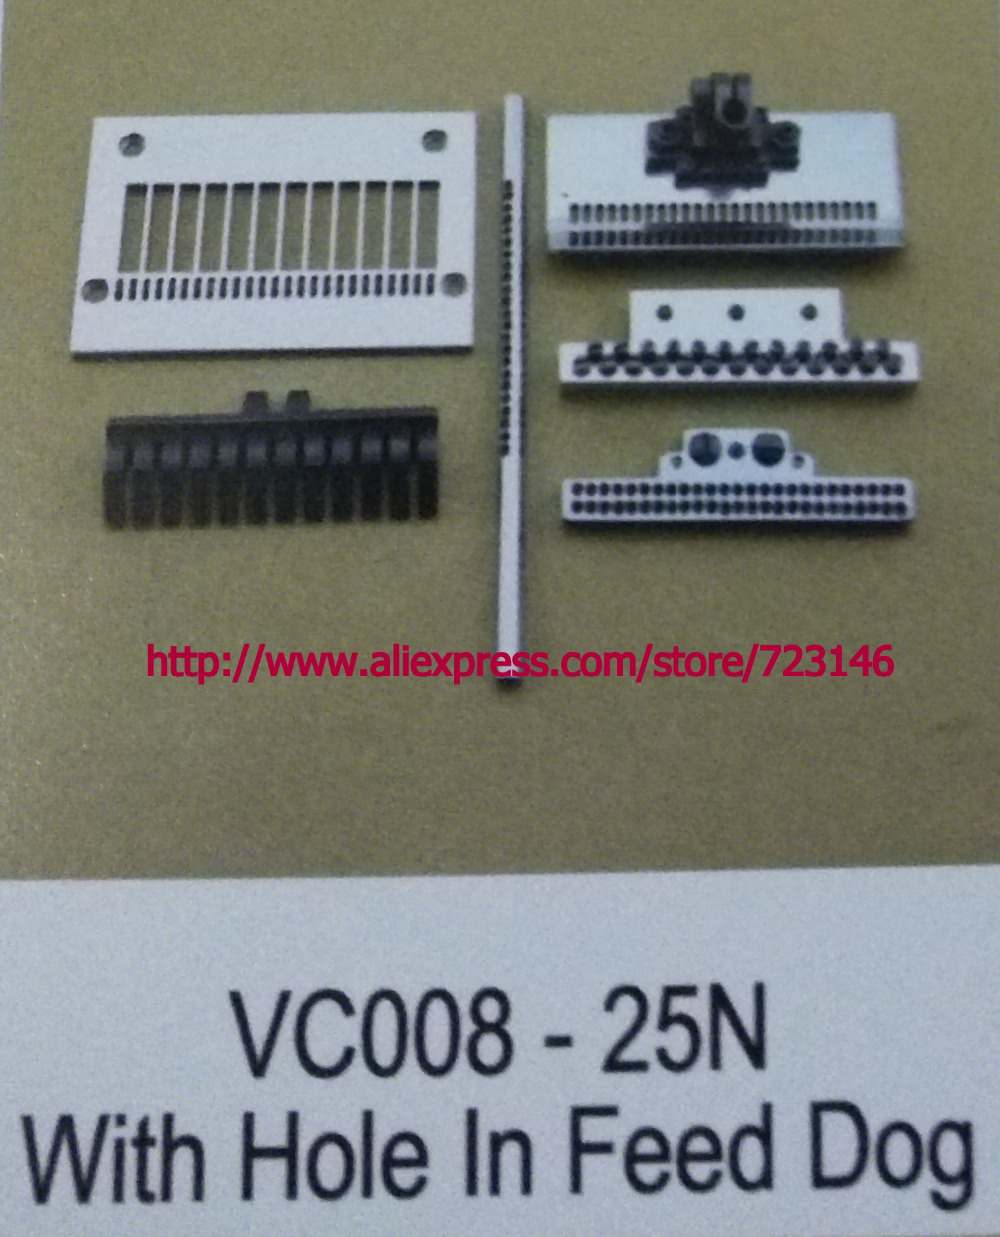 NEEDLE GAUGE SET vc008-25n with hole in feed dog NDUSTRIAL SEWING MACHINE PLATE FOR CANSAI JUKI SINGER